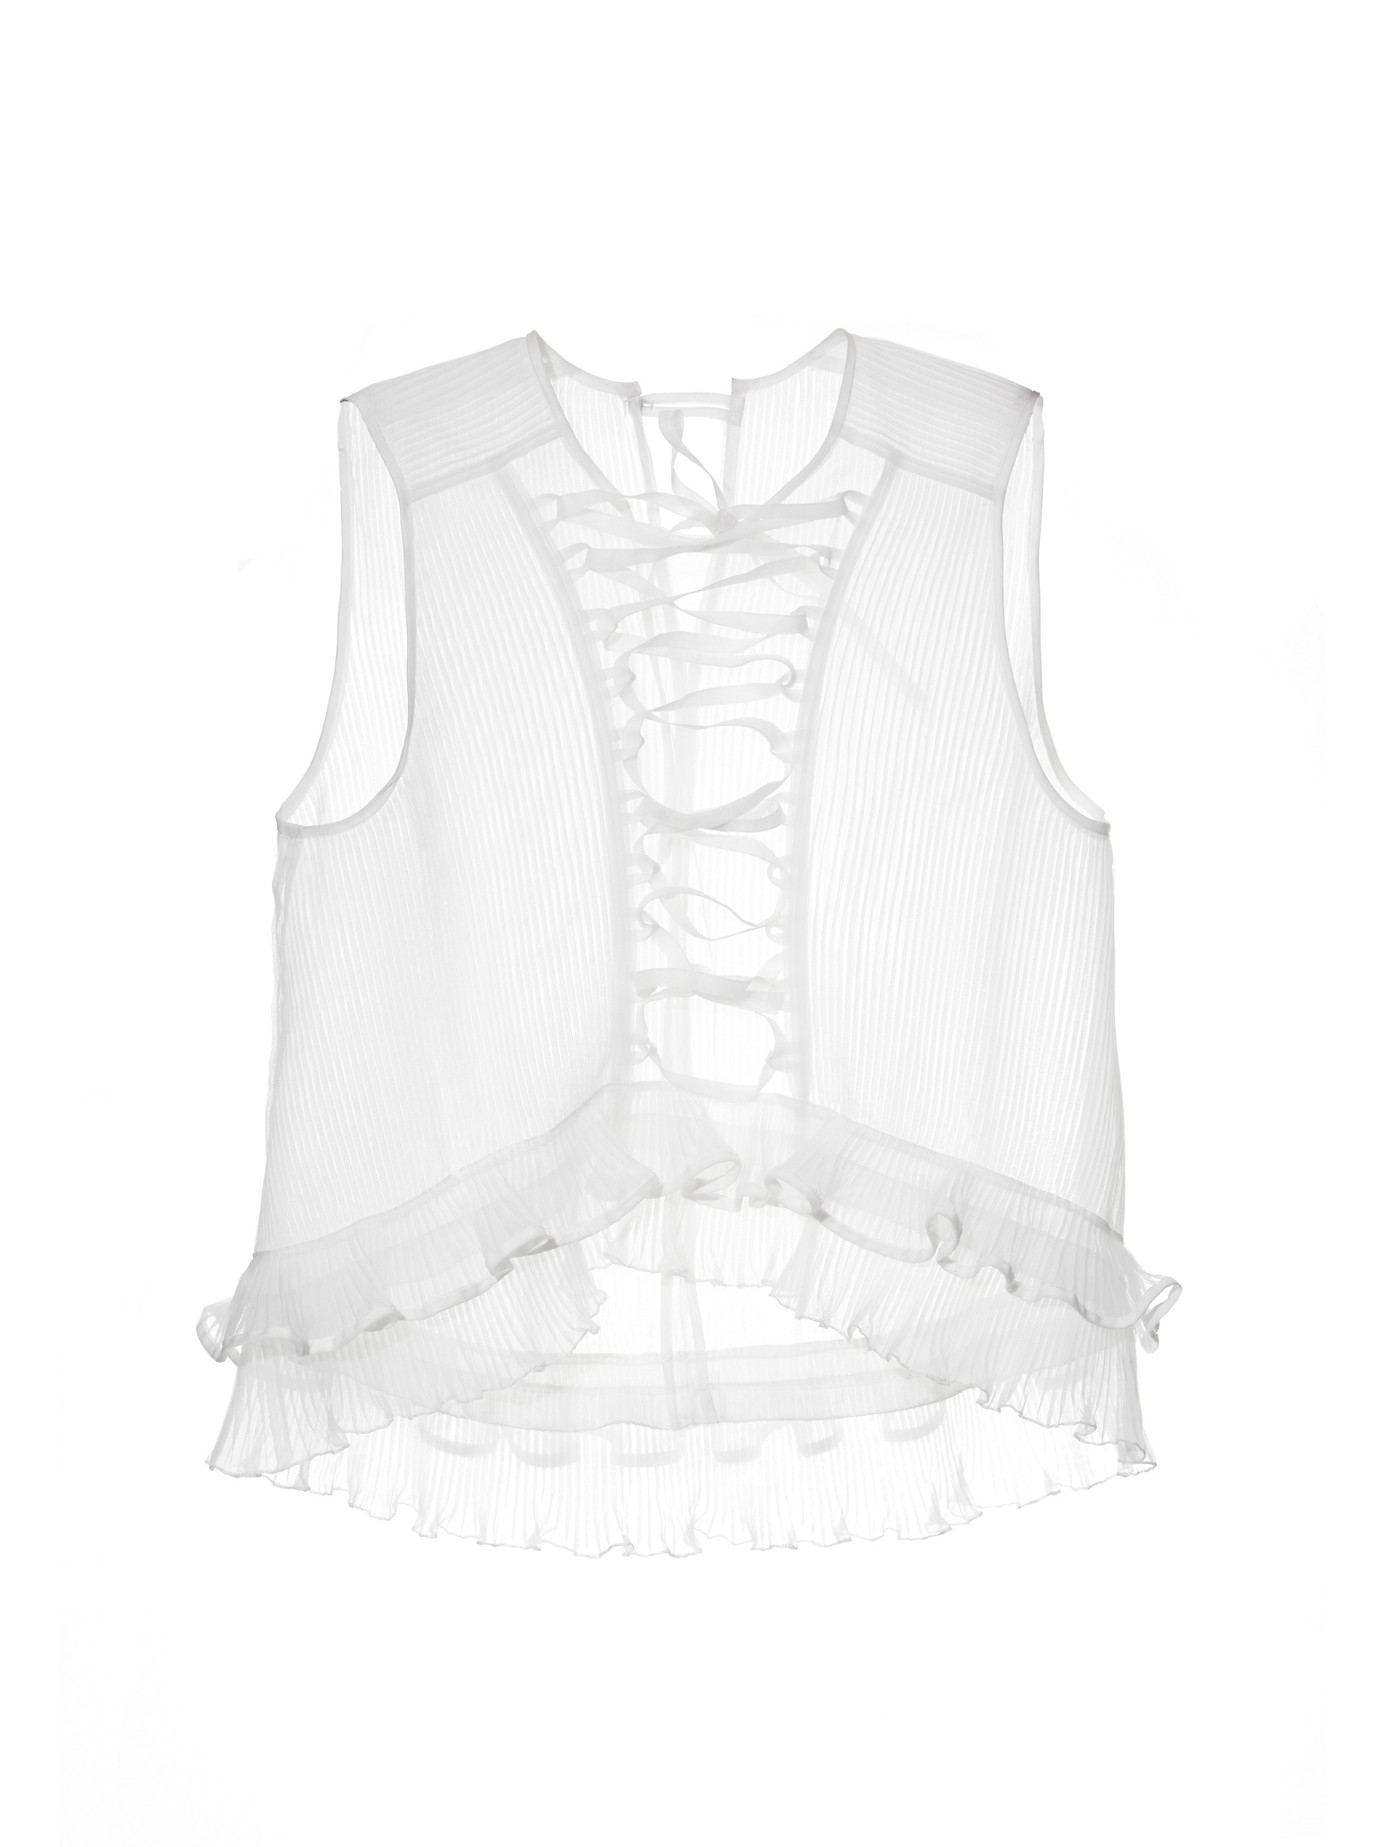 Isabel Marant is renowned for romantic designs inspired by the label's native Paris, and this white linen Lyneth top is no exception. It's crafted to a high-neck, with crochet panels running across the chest and waist, exaggerated blouson sleeves, and lace cuffs.